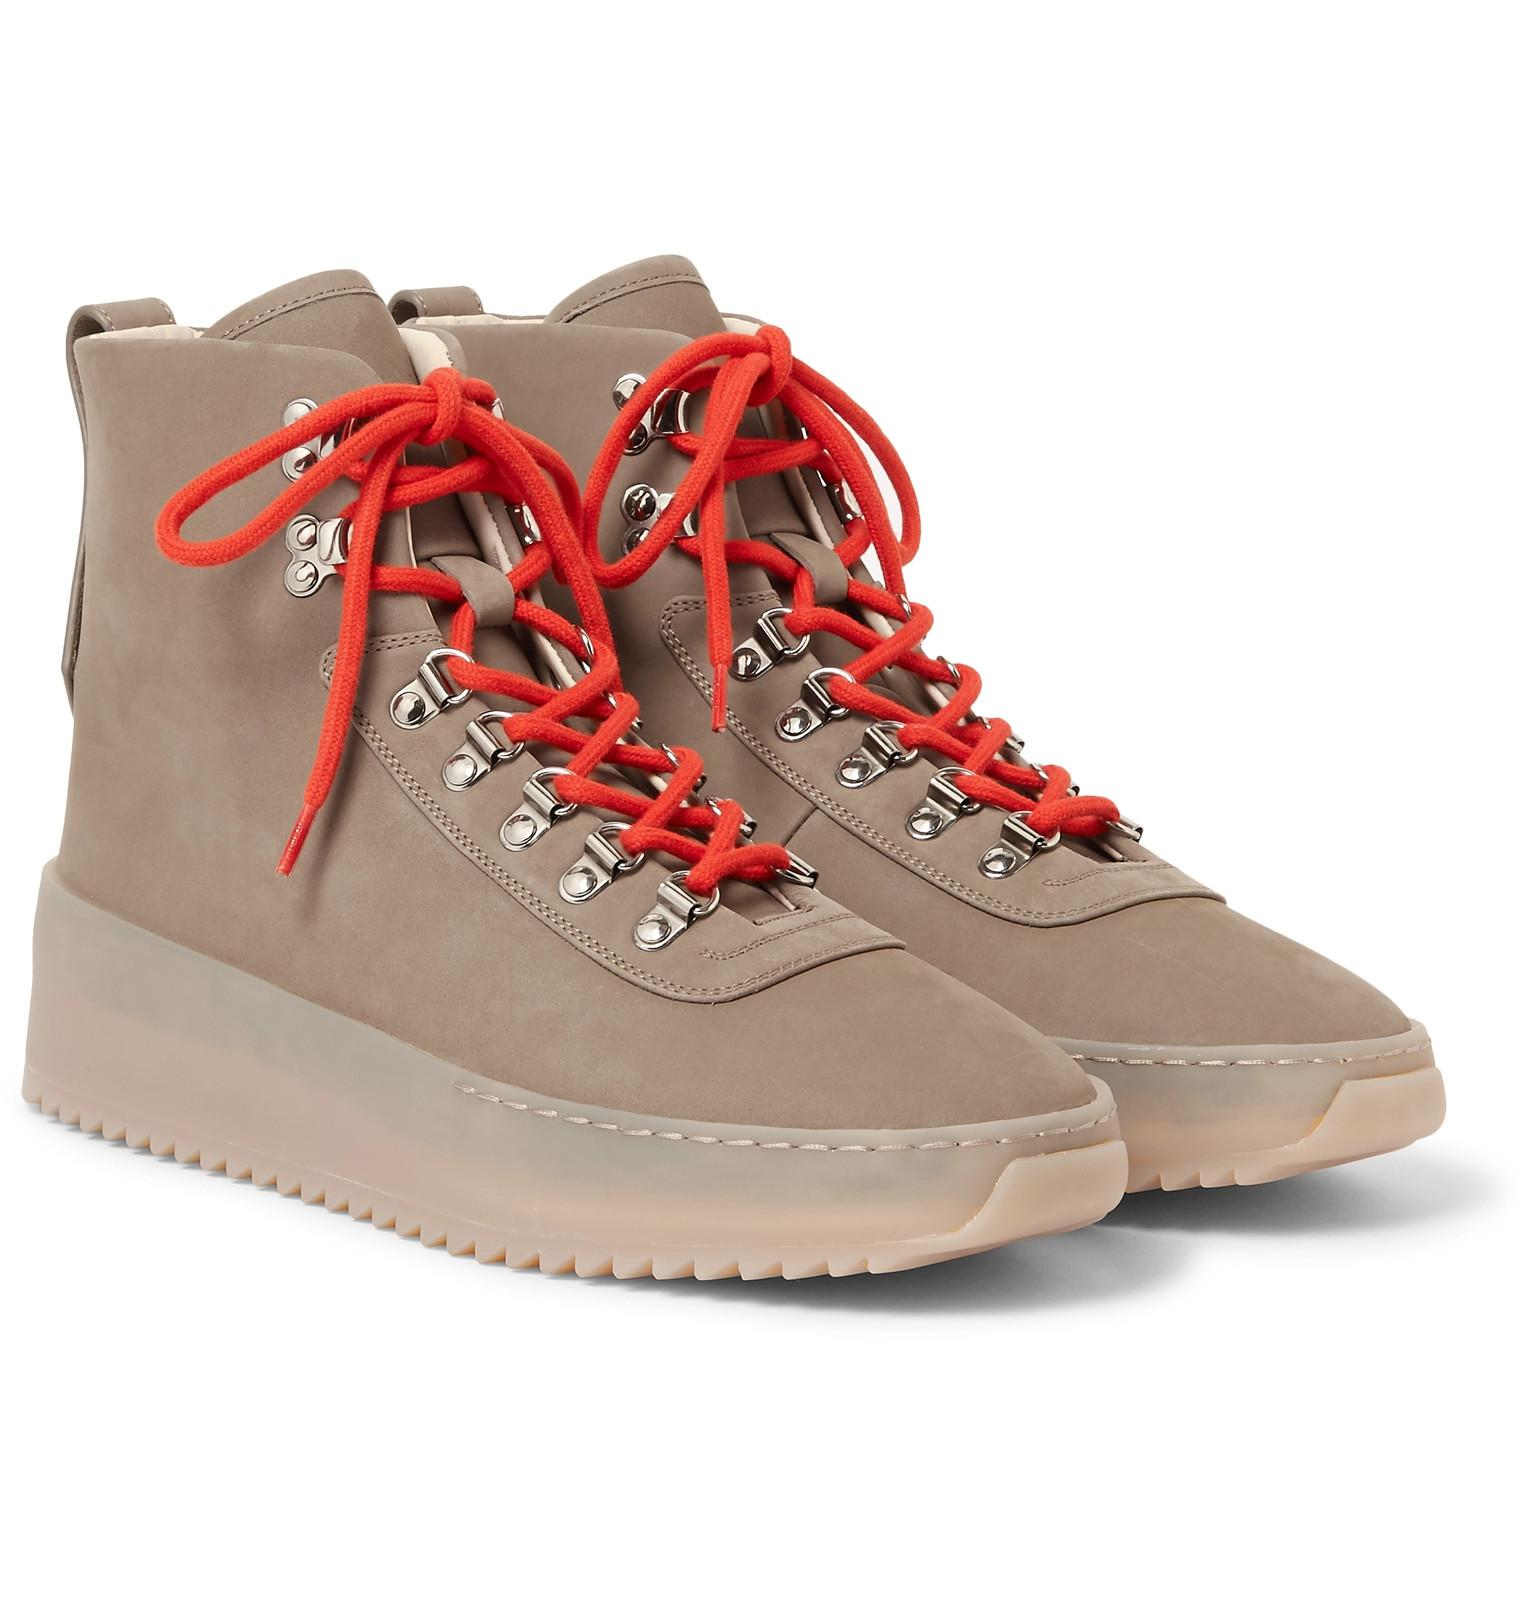 Mens Hiking Nubuck & Leather Sneakers Fear of God